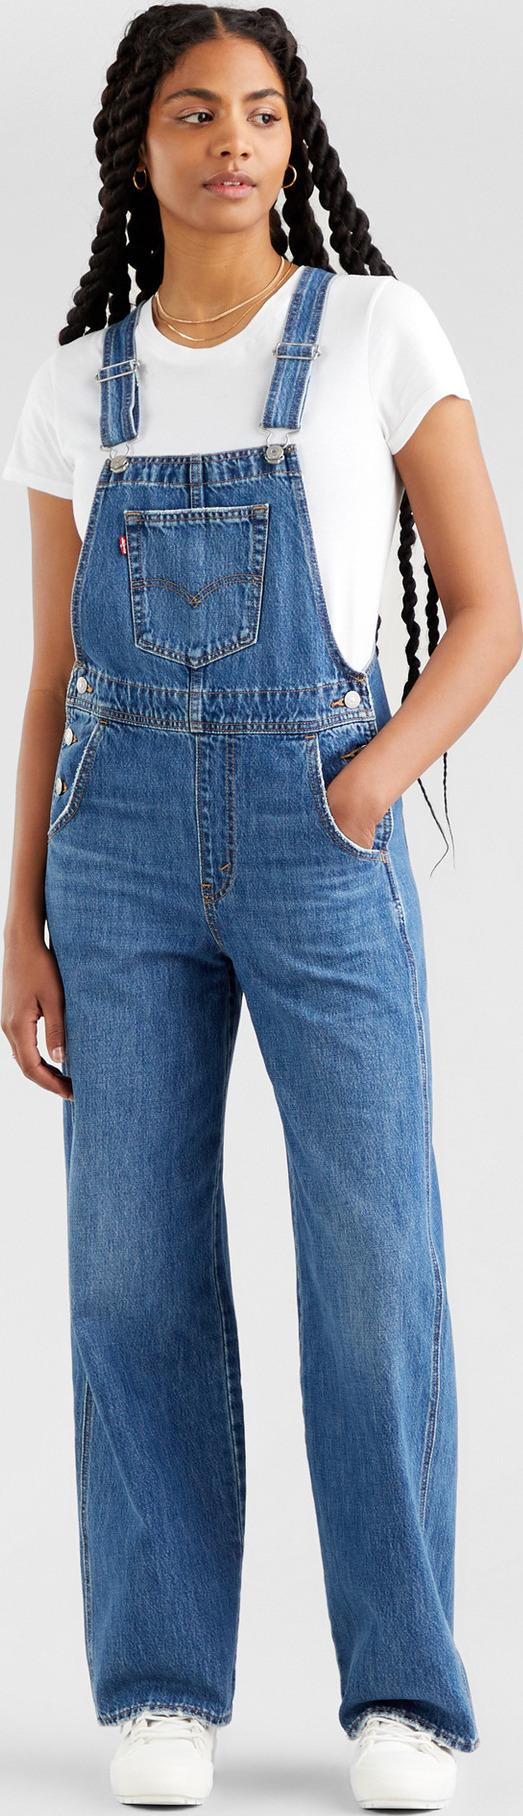 Loose Overall Little Blue Jeans s laclem Levi